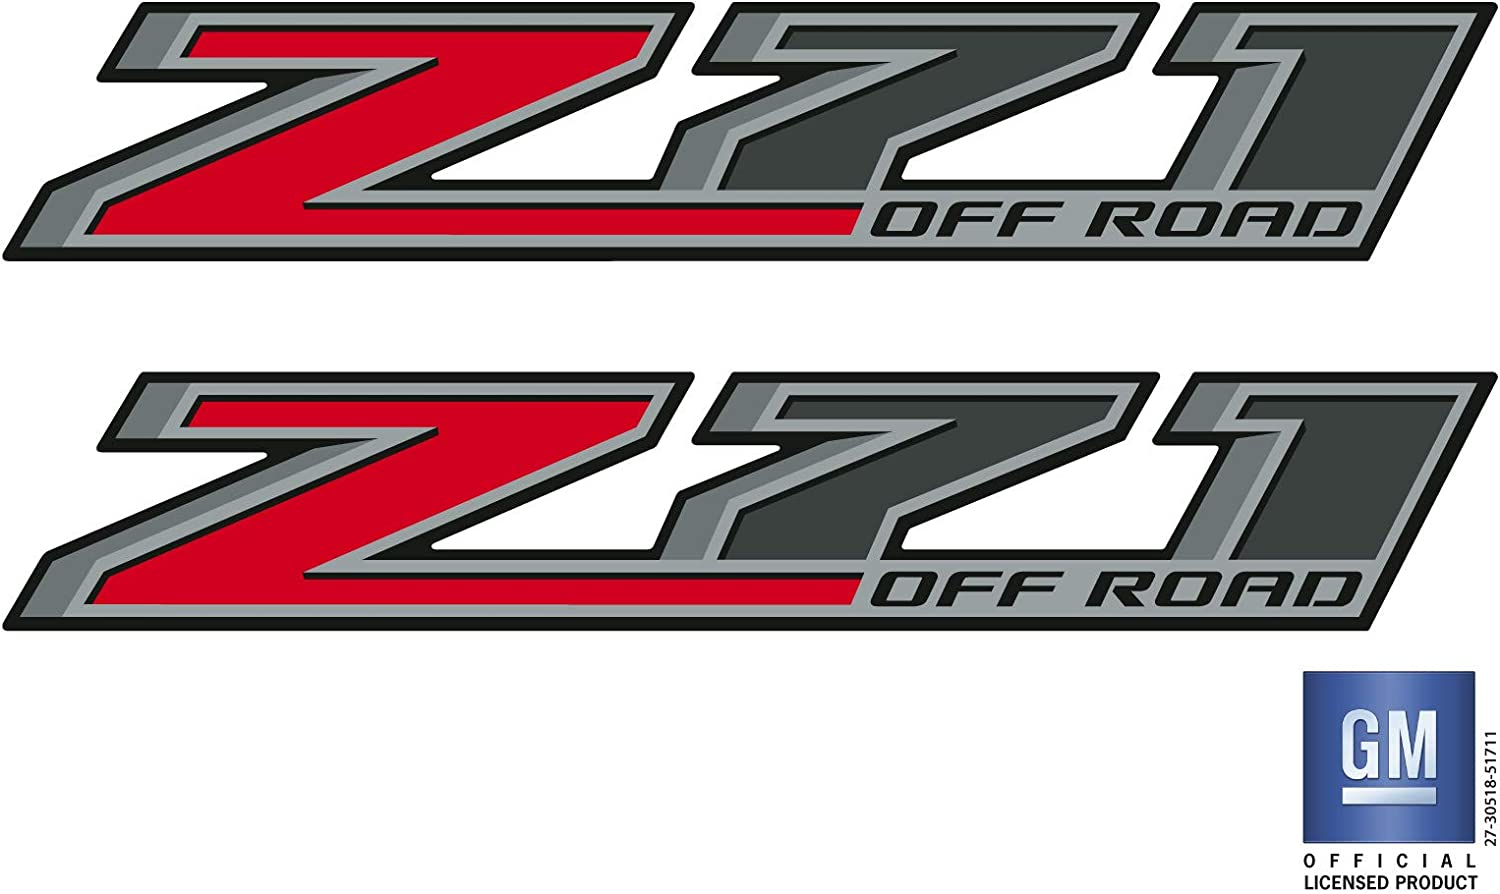 2014 15 16 17 18 Chevy Colorado Z71 OFF ROAD Bed Side Decal Stickers Set Of 2